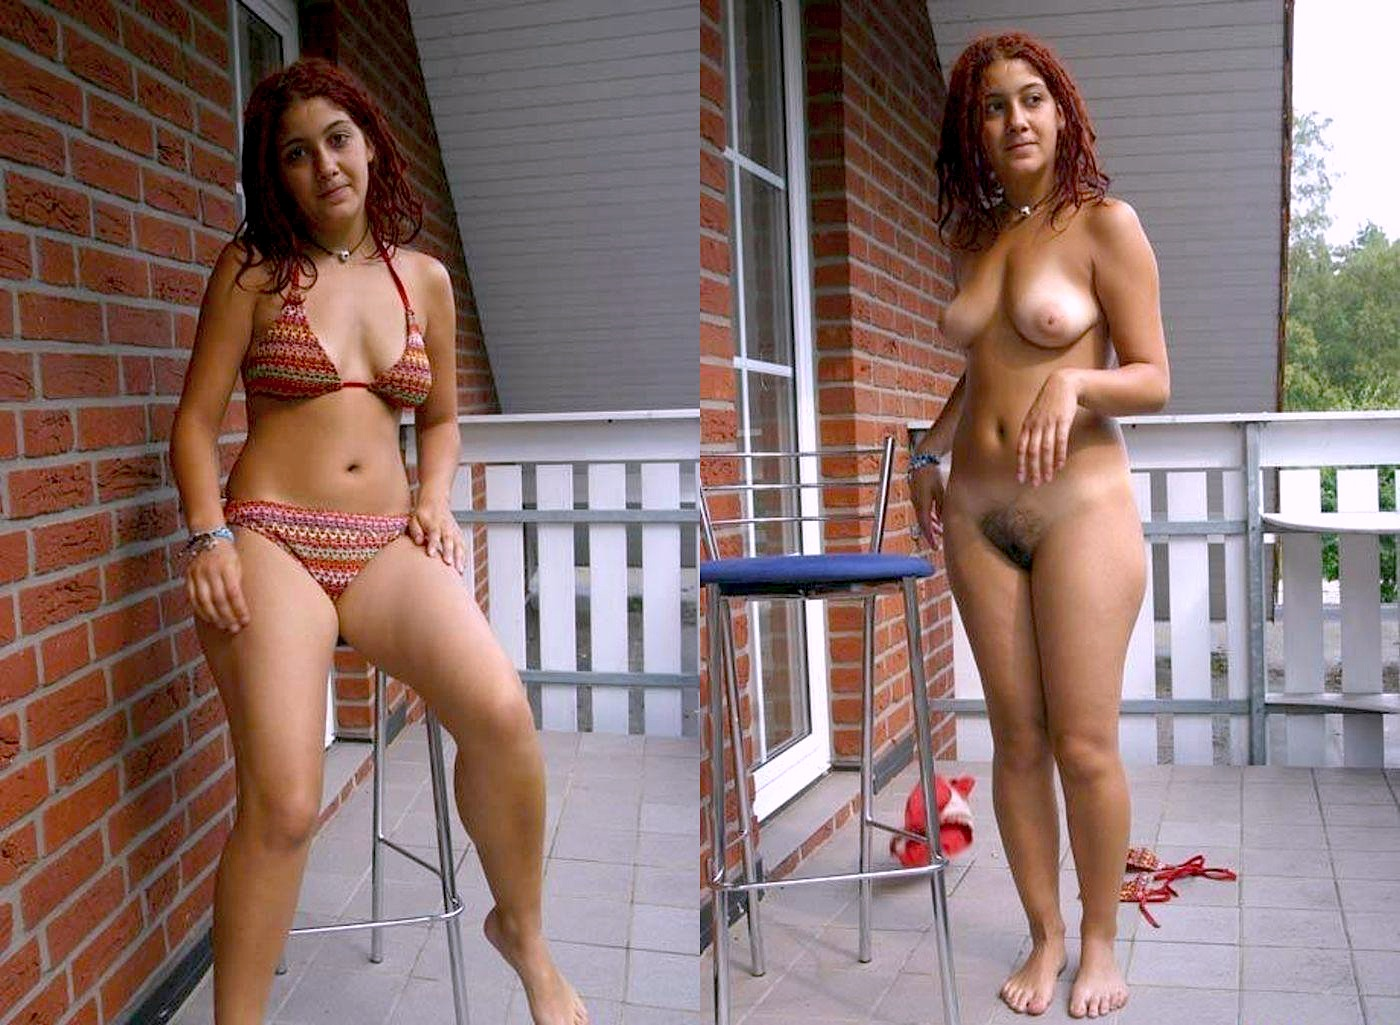 dressed undressed Amateur swimsuit and